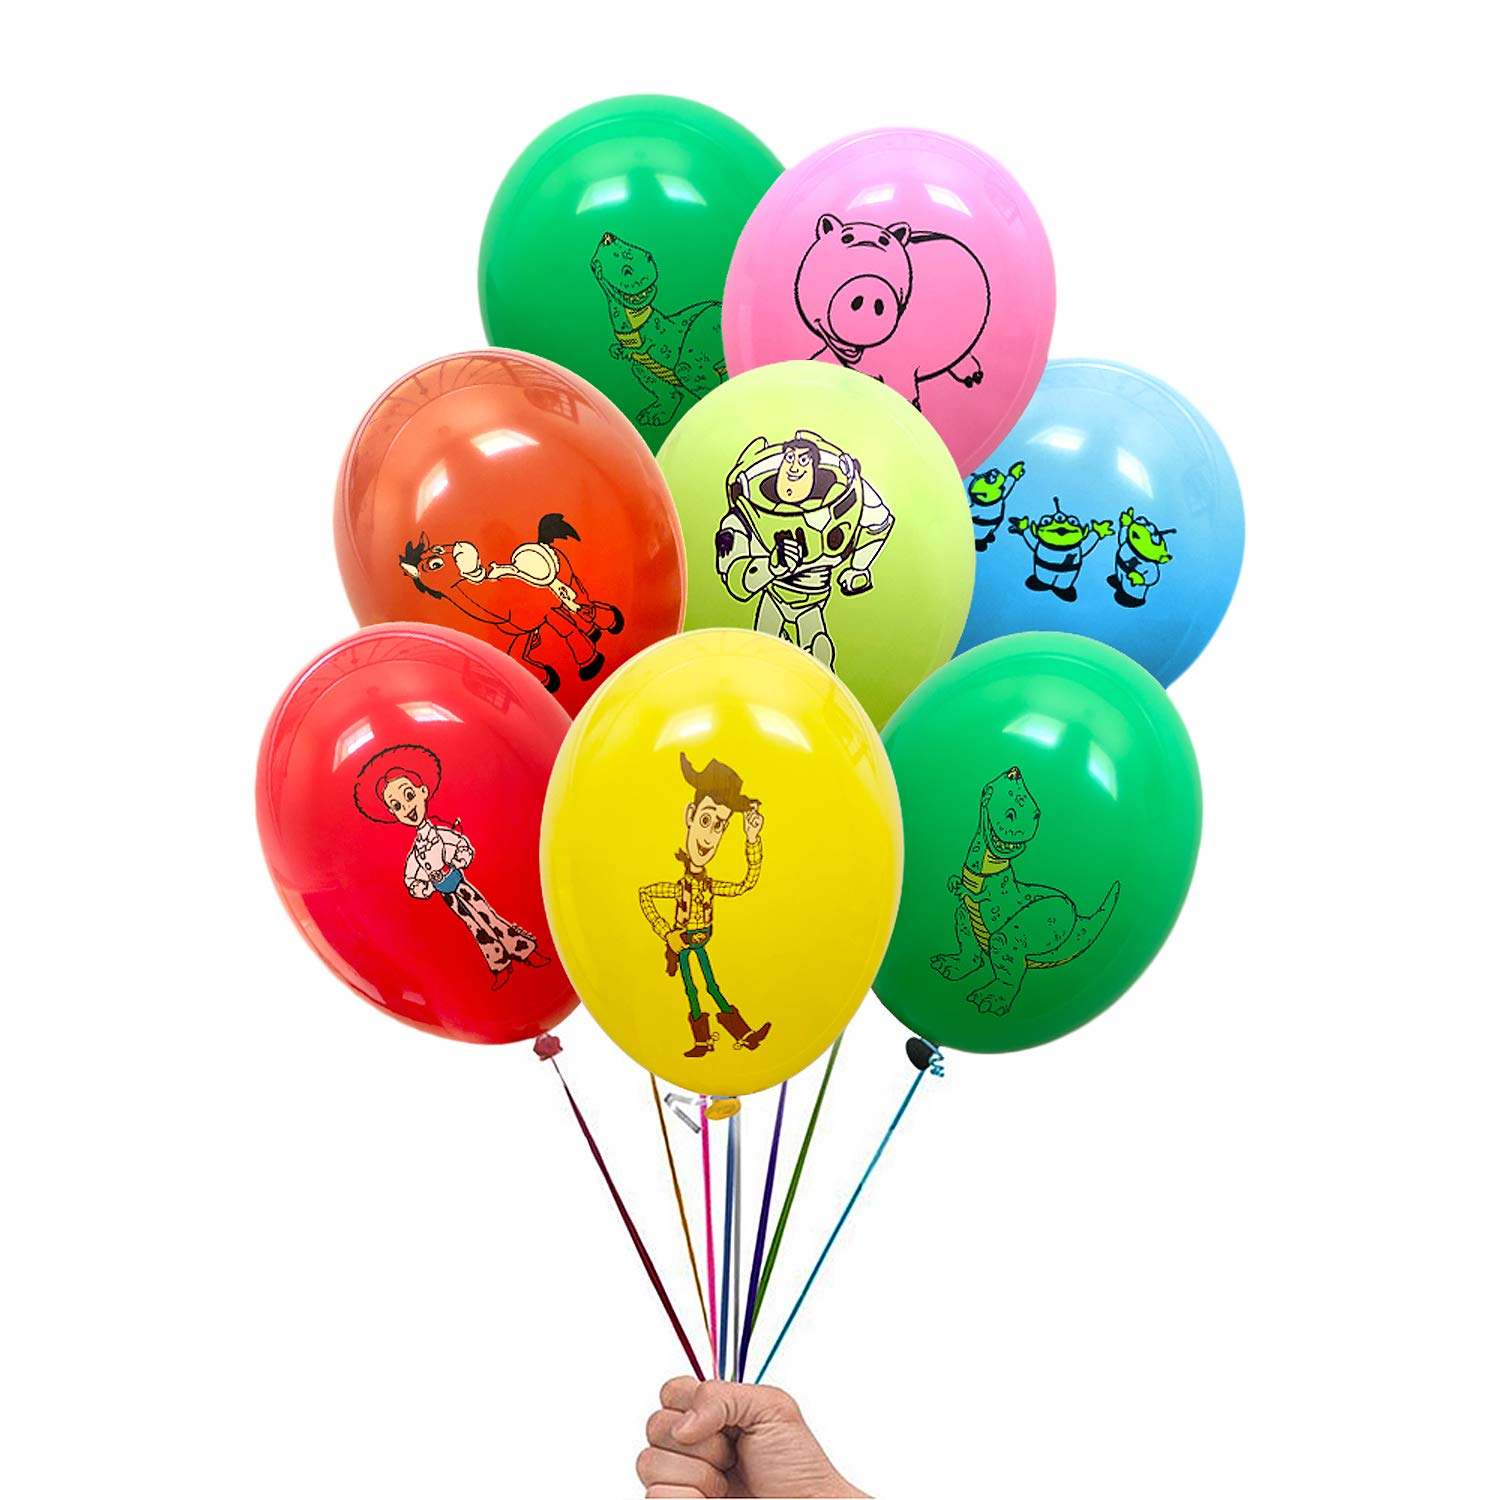 Toy Story Woody and Friends 21 Count Party Balloon Pack - Large 12'' Latex Balloons